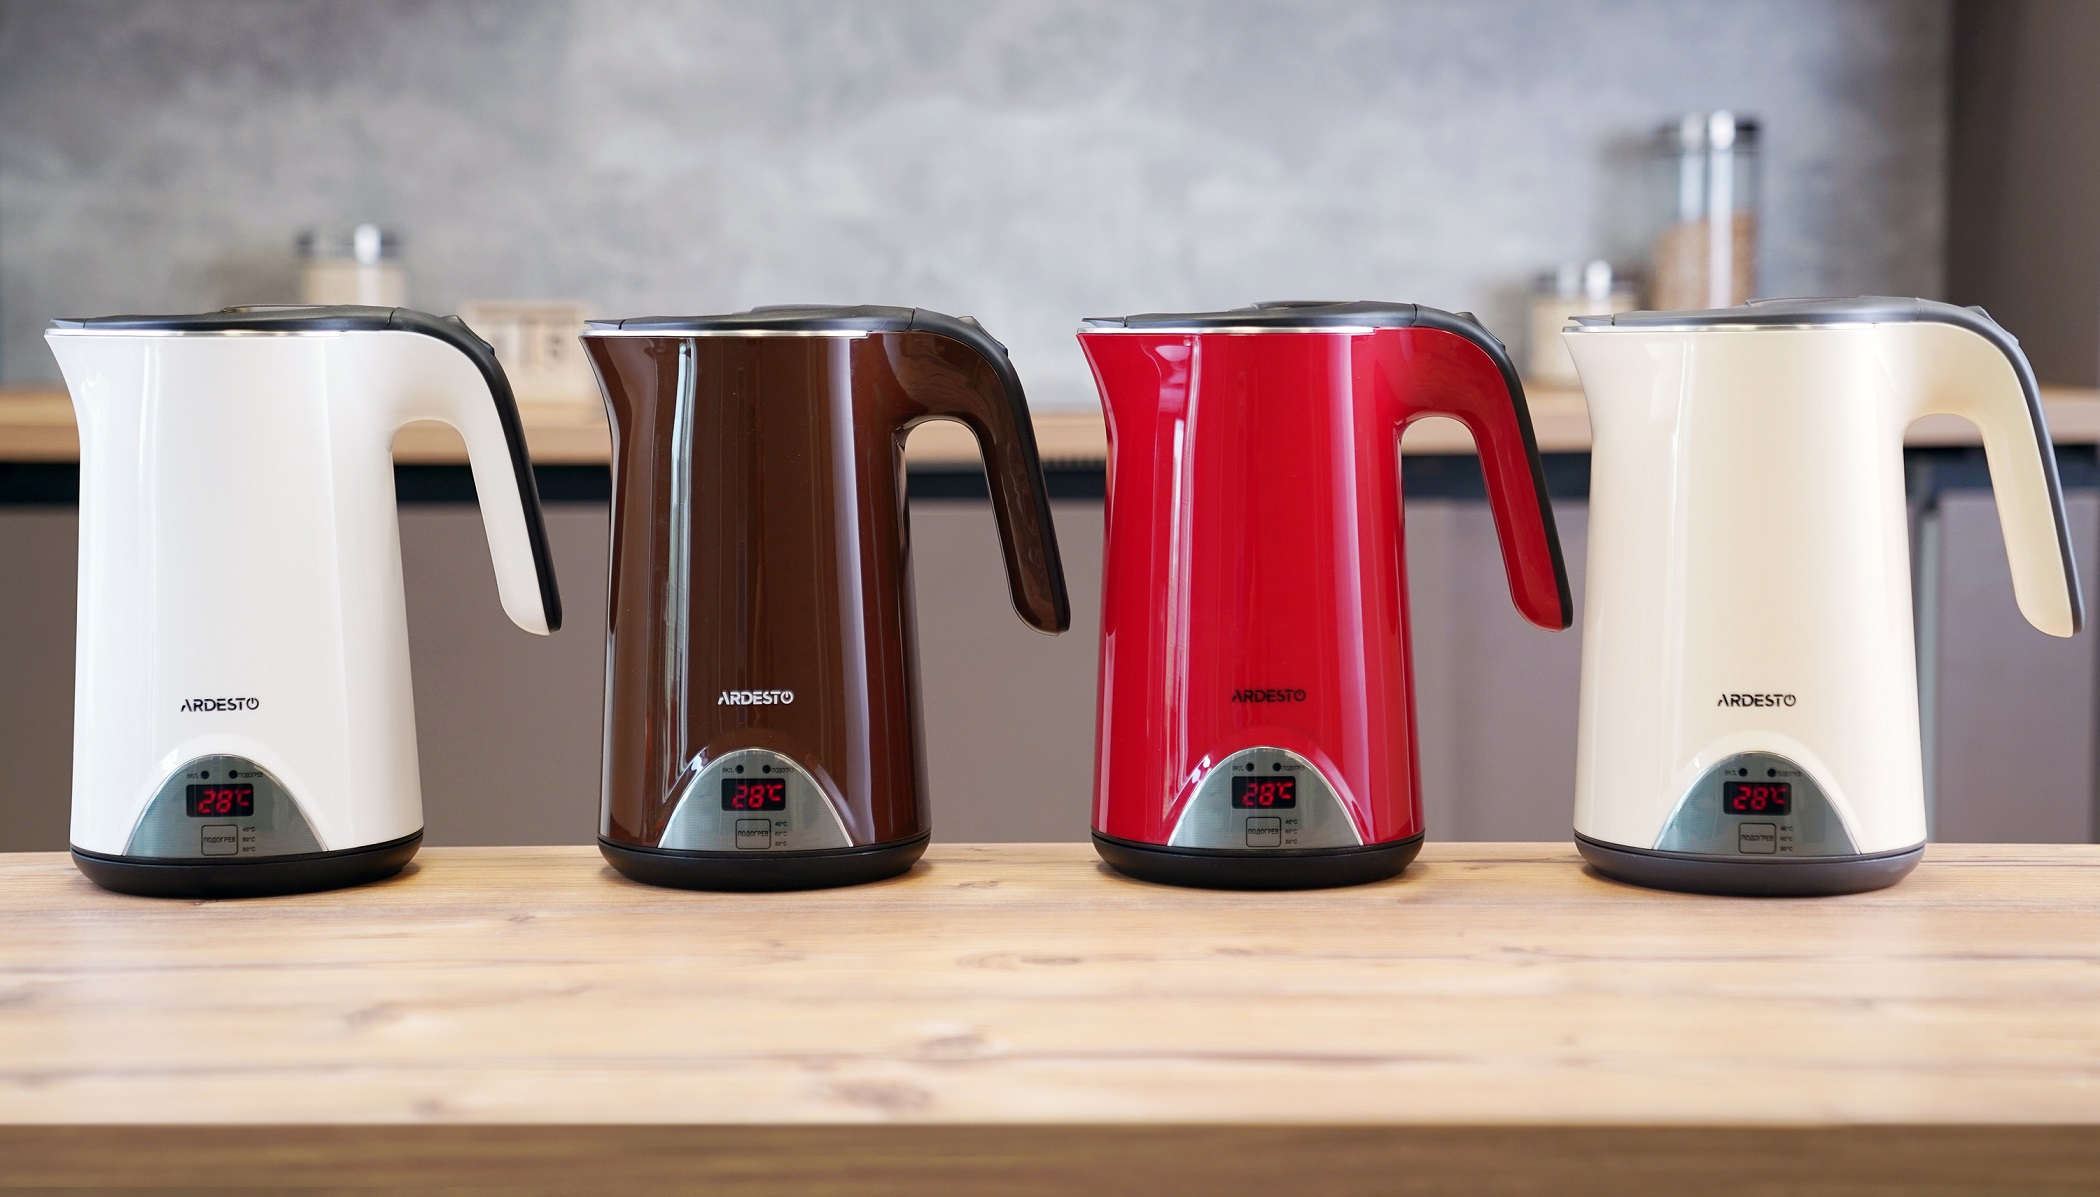 Ardesto EKL-1617 electric kettles have double walls and the temperature support function